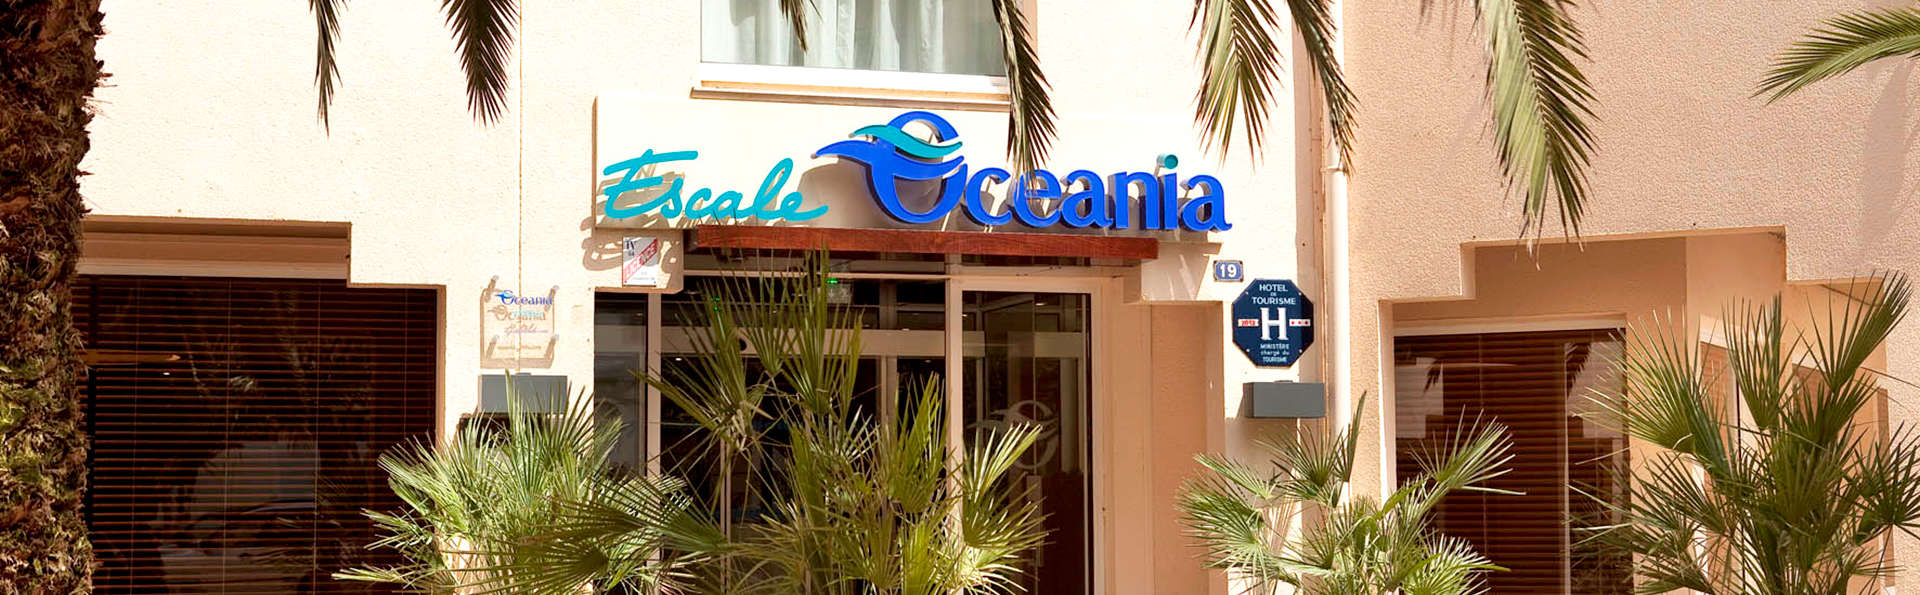 Escale Oceania Biarritz - Edit_Entrance2.jpg